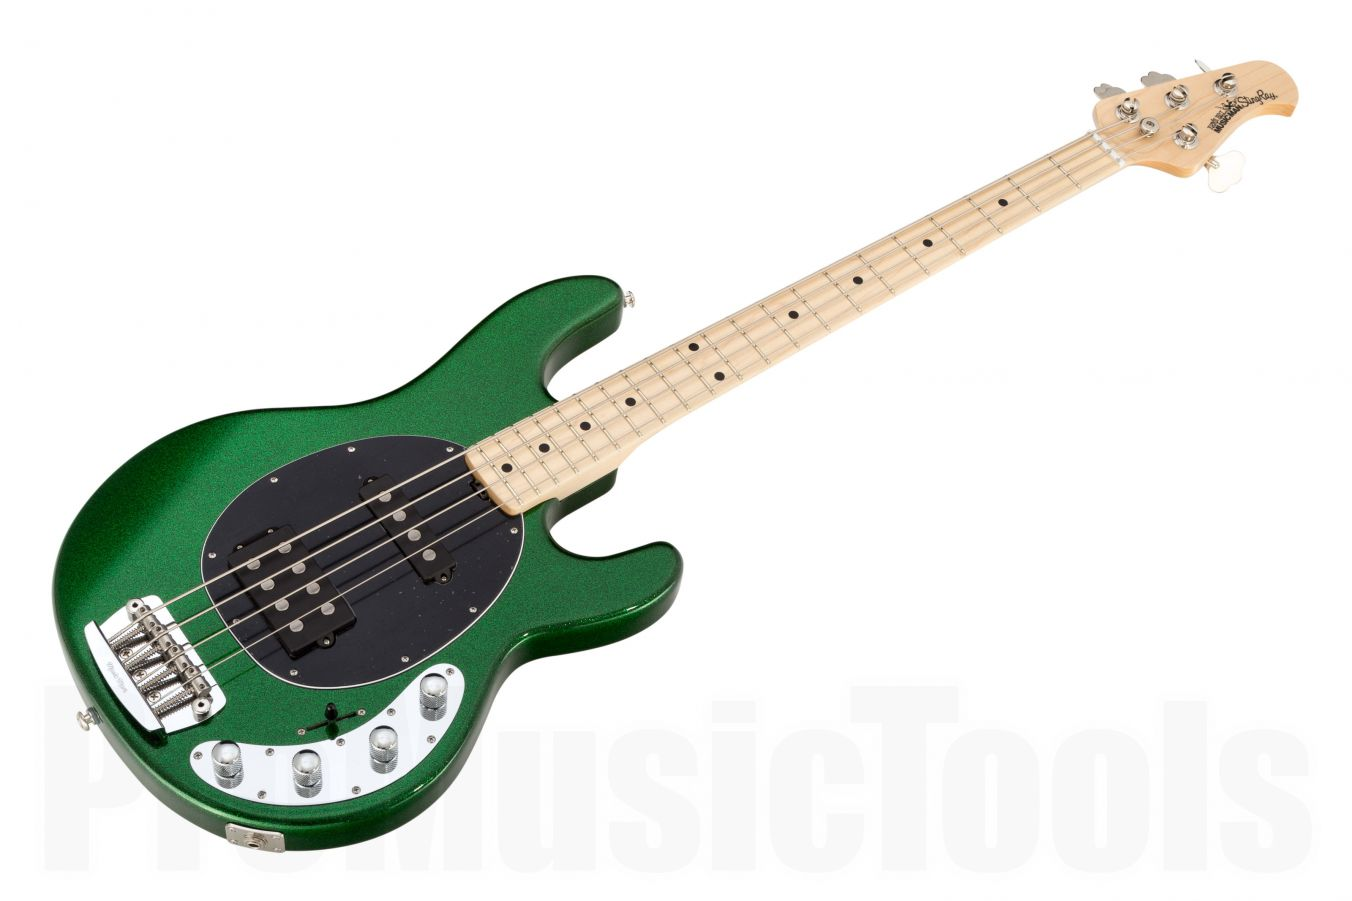 Music Man USA Stingray 4 HS ES - PDN Emerald Green Sparkle Limited Edition MN